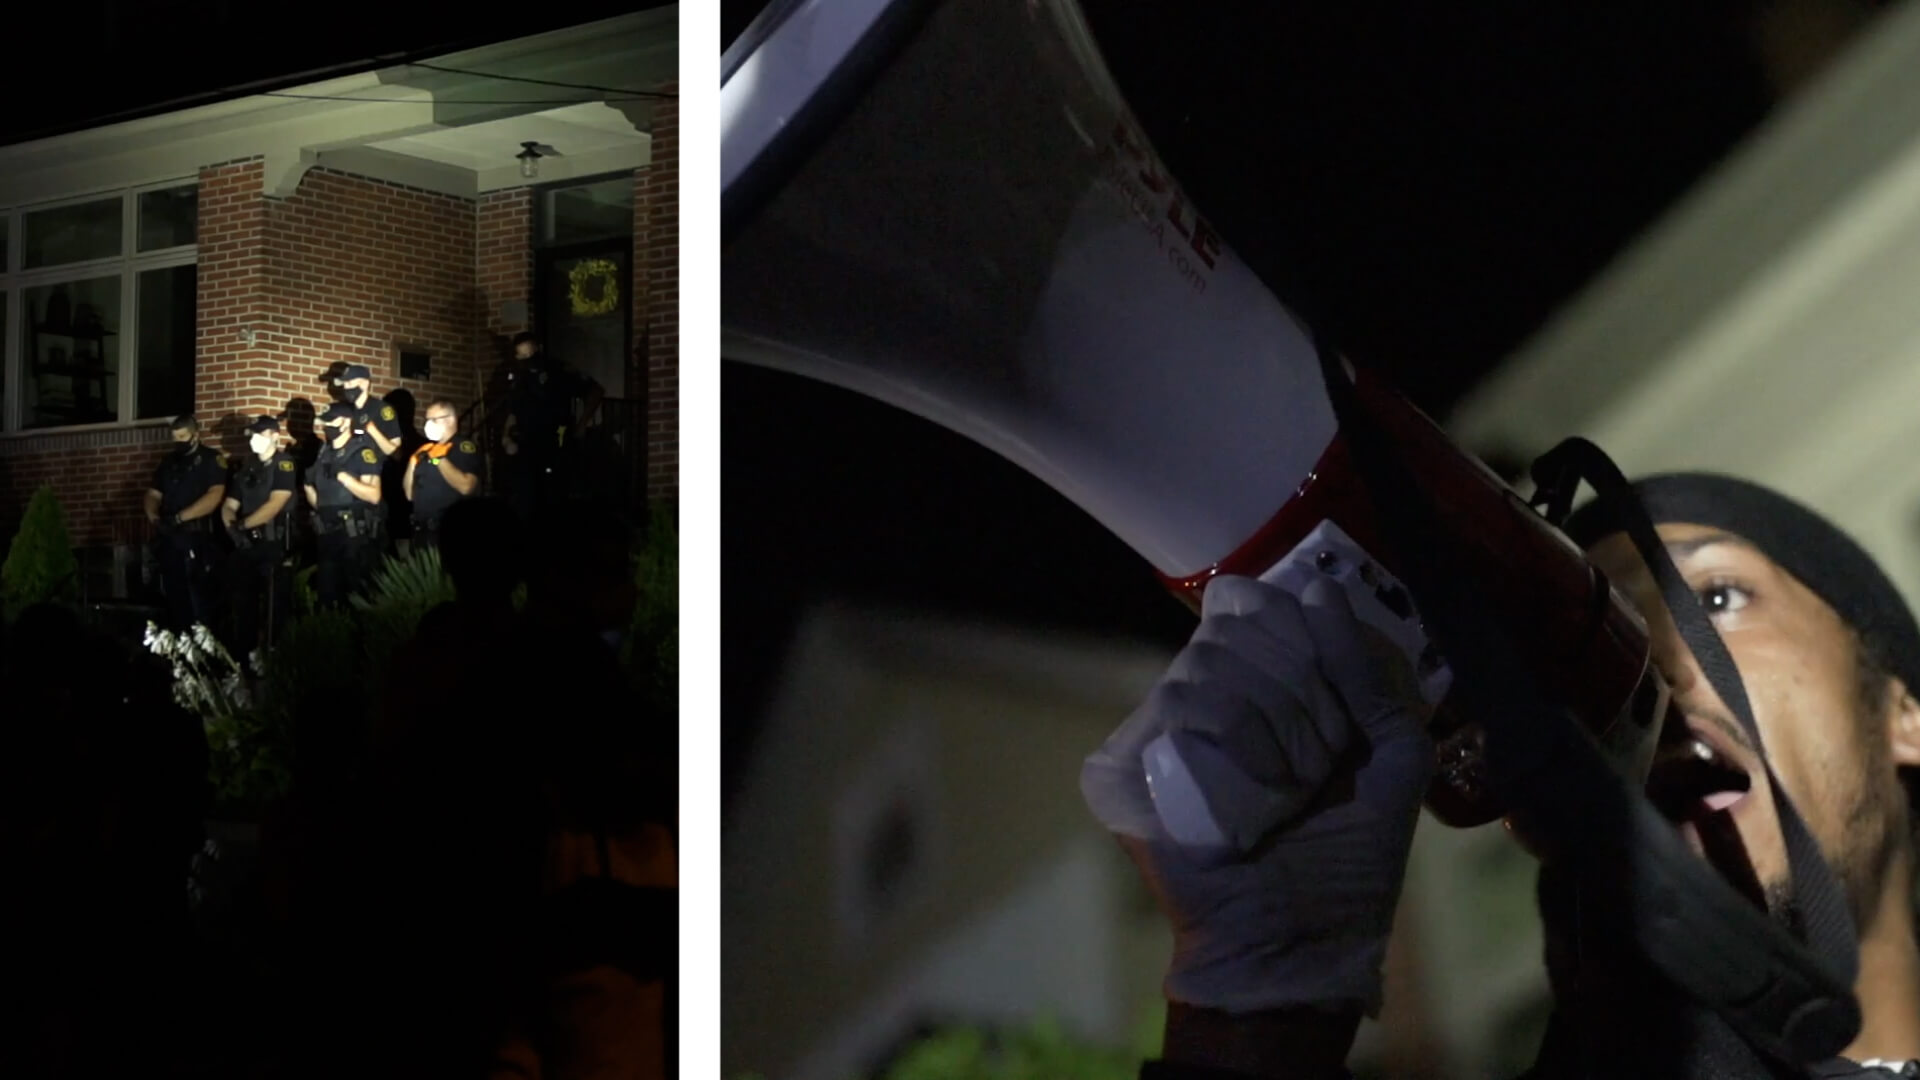 Left: Protesters gathered outside the home of Mayor Bill Peduto on Sept. 5. Right: Independent activist Lorenzo Rulli speaks through a megaphone as fellow demonstrators protest outside Mayor Bill Peduto's home.